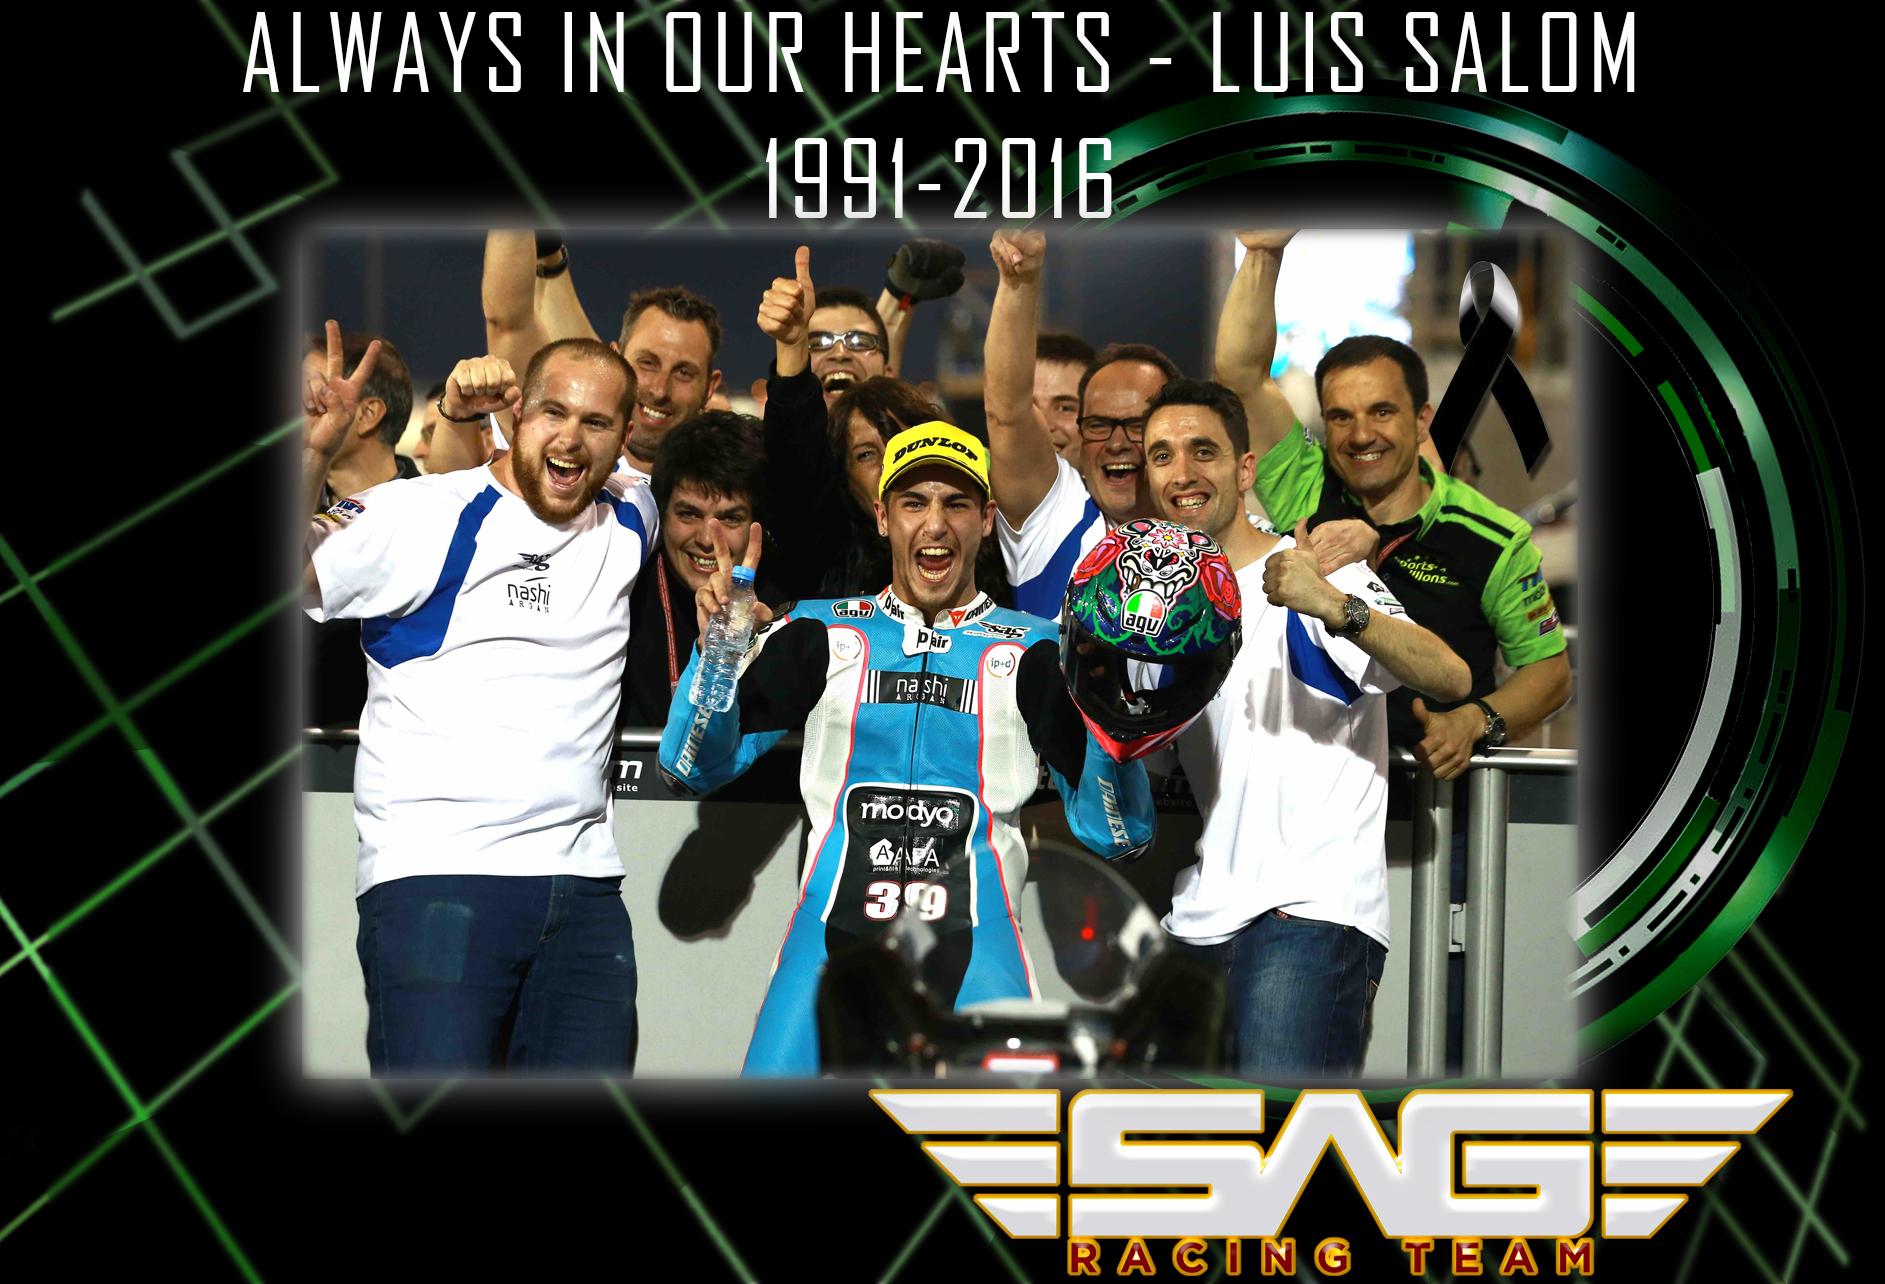 Luis Salom - Race in Peace